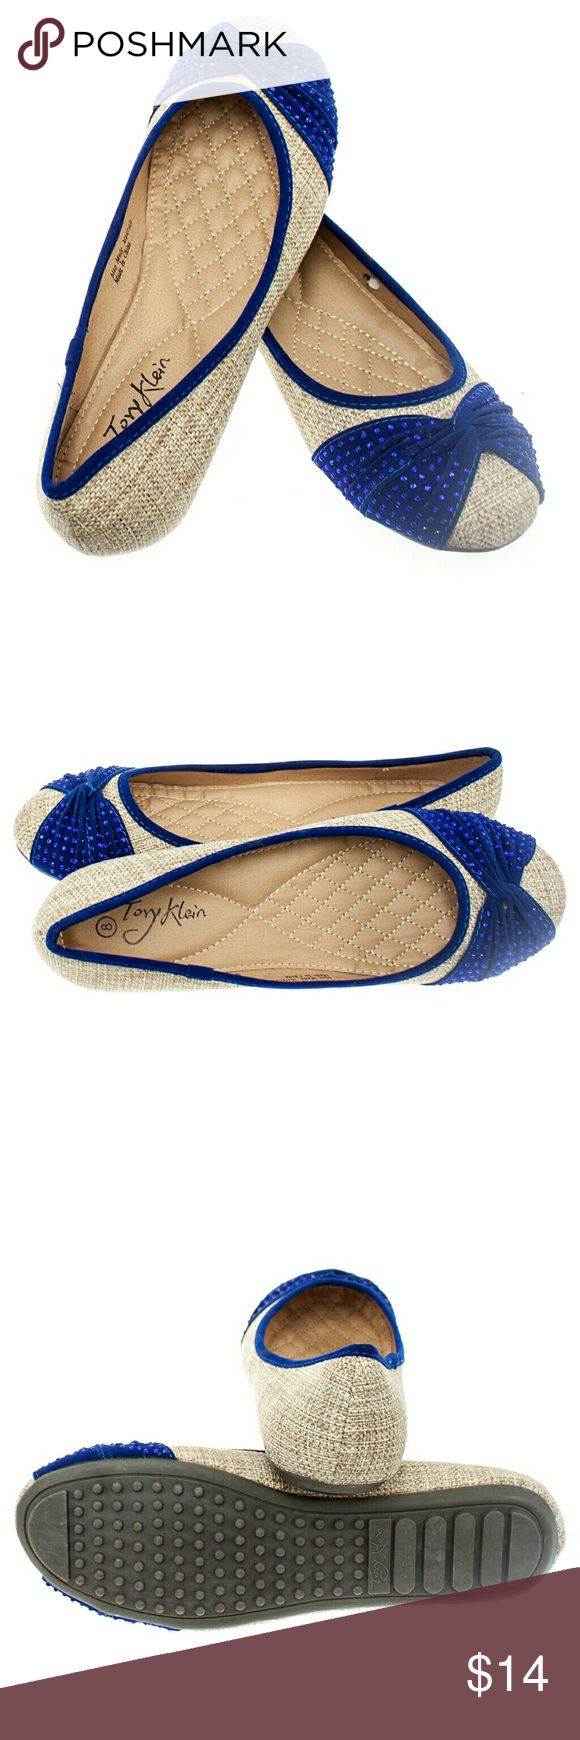 """Women 'Curtsy' Fabric Flats, b-1406, Beige Blue Brand new Tory K light beige - blue woman ballerina flats with a sequined twist in the front. Soft cushioned sole, very comfortable. Bubbled bottom sole for extra traction. A true staple in ladies shoes fashion! Measurements: larger sizes run small. Size 8 measures 9.5 inches, sz 8.5 - 9 3/4"""", sz 9 - 10"""", sz 9.5 - 10 1/4"""", sz 10 - 10.5"""", all half sizes are in 1/4 inch  increments of each other. Tory K  Shoes Flats & Loafers"""